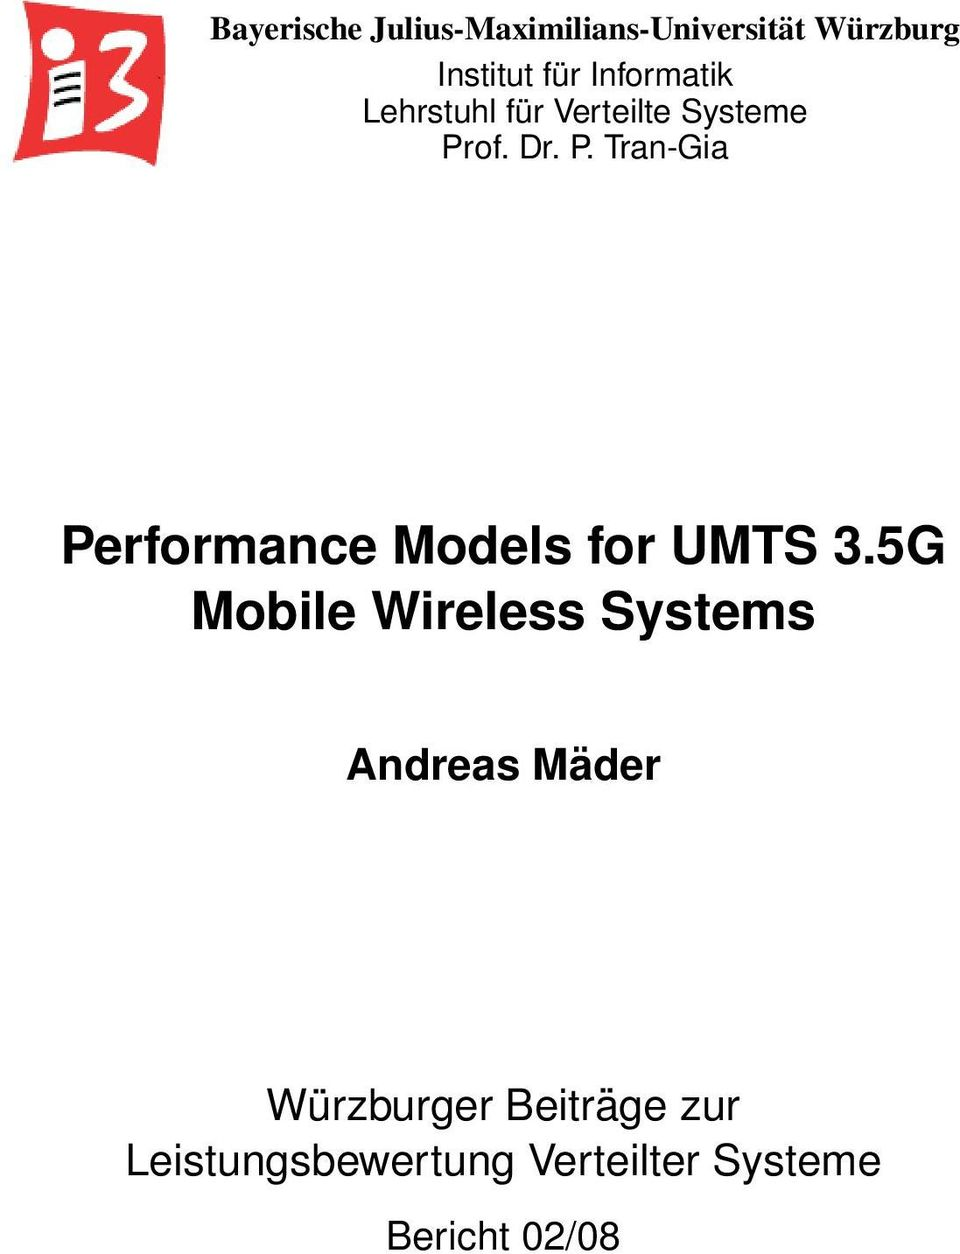 of. Dr. P. Tran-Gia Performance Models for UMTS 3.